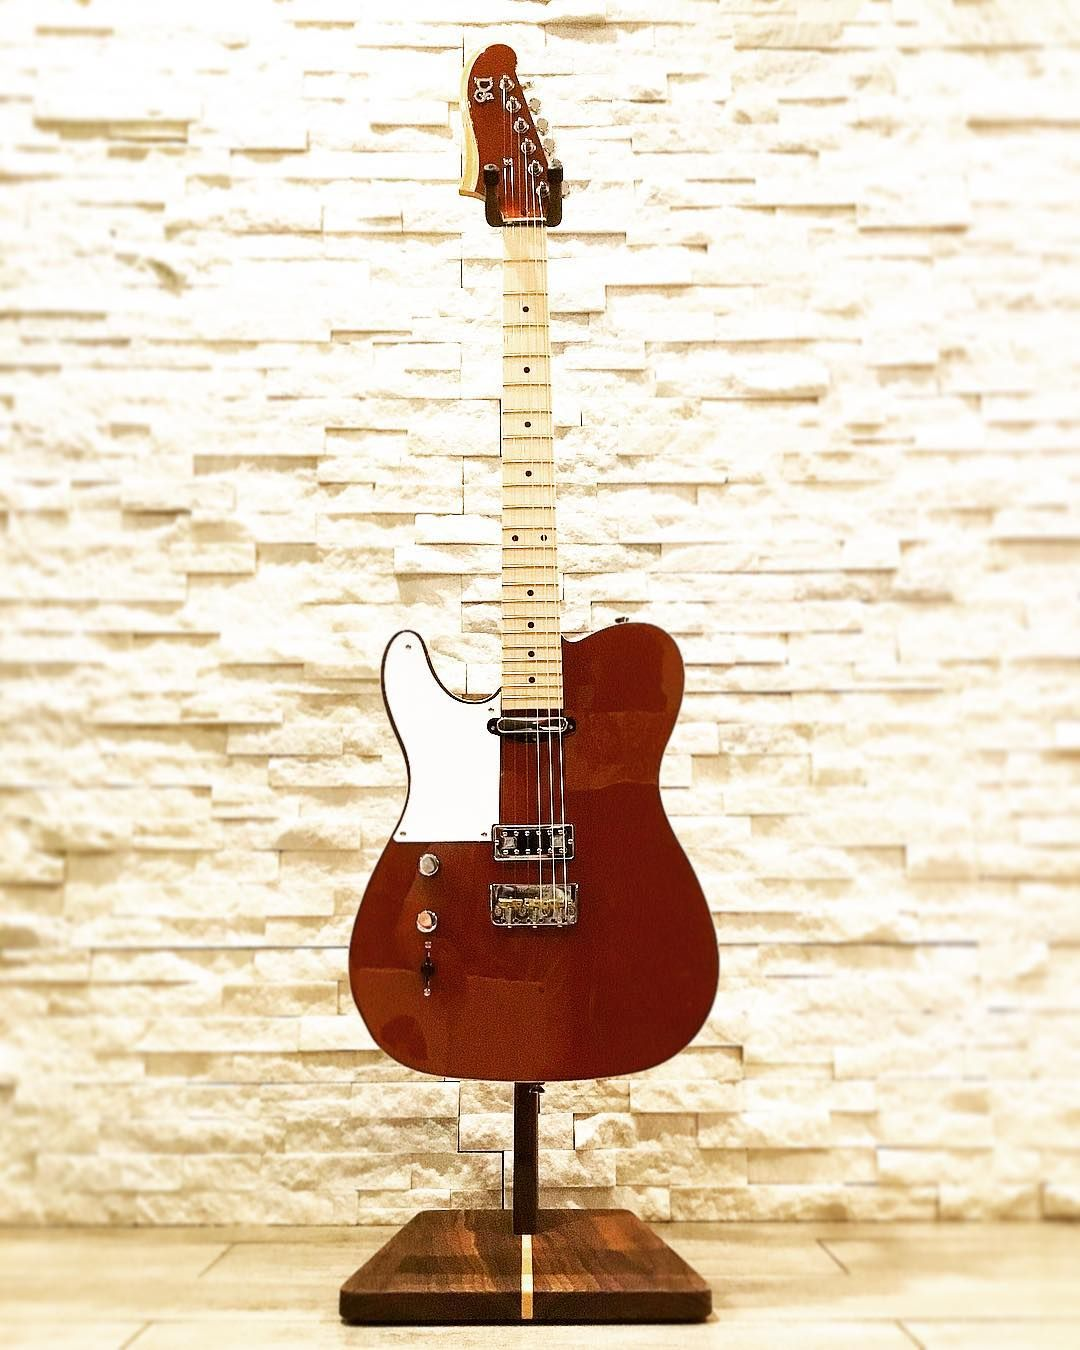 Our Bette Plays As Good As She Looks A Light Weight Tone Monster Due To Her Chambered Mahogany Body Righties Your In Luck Guitar Lefty Guitars Guitar Design